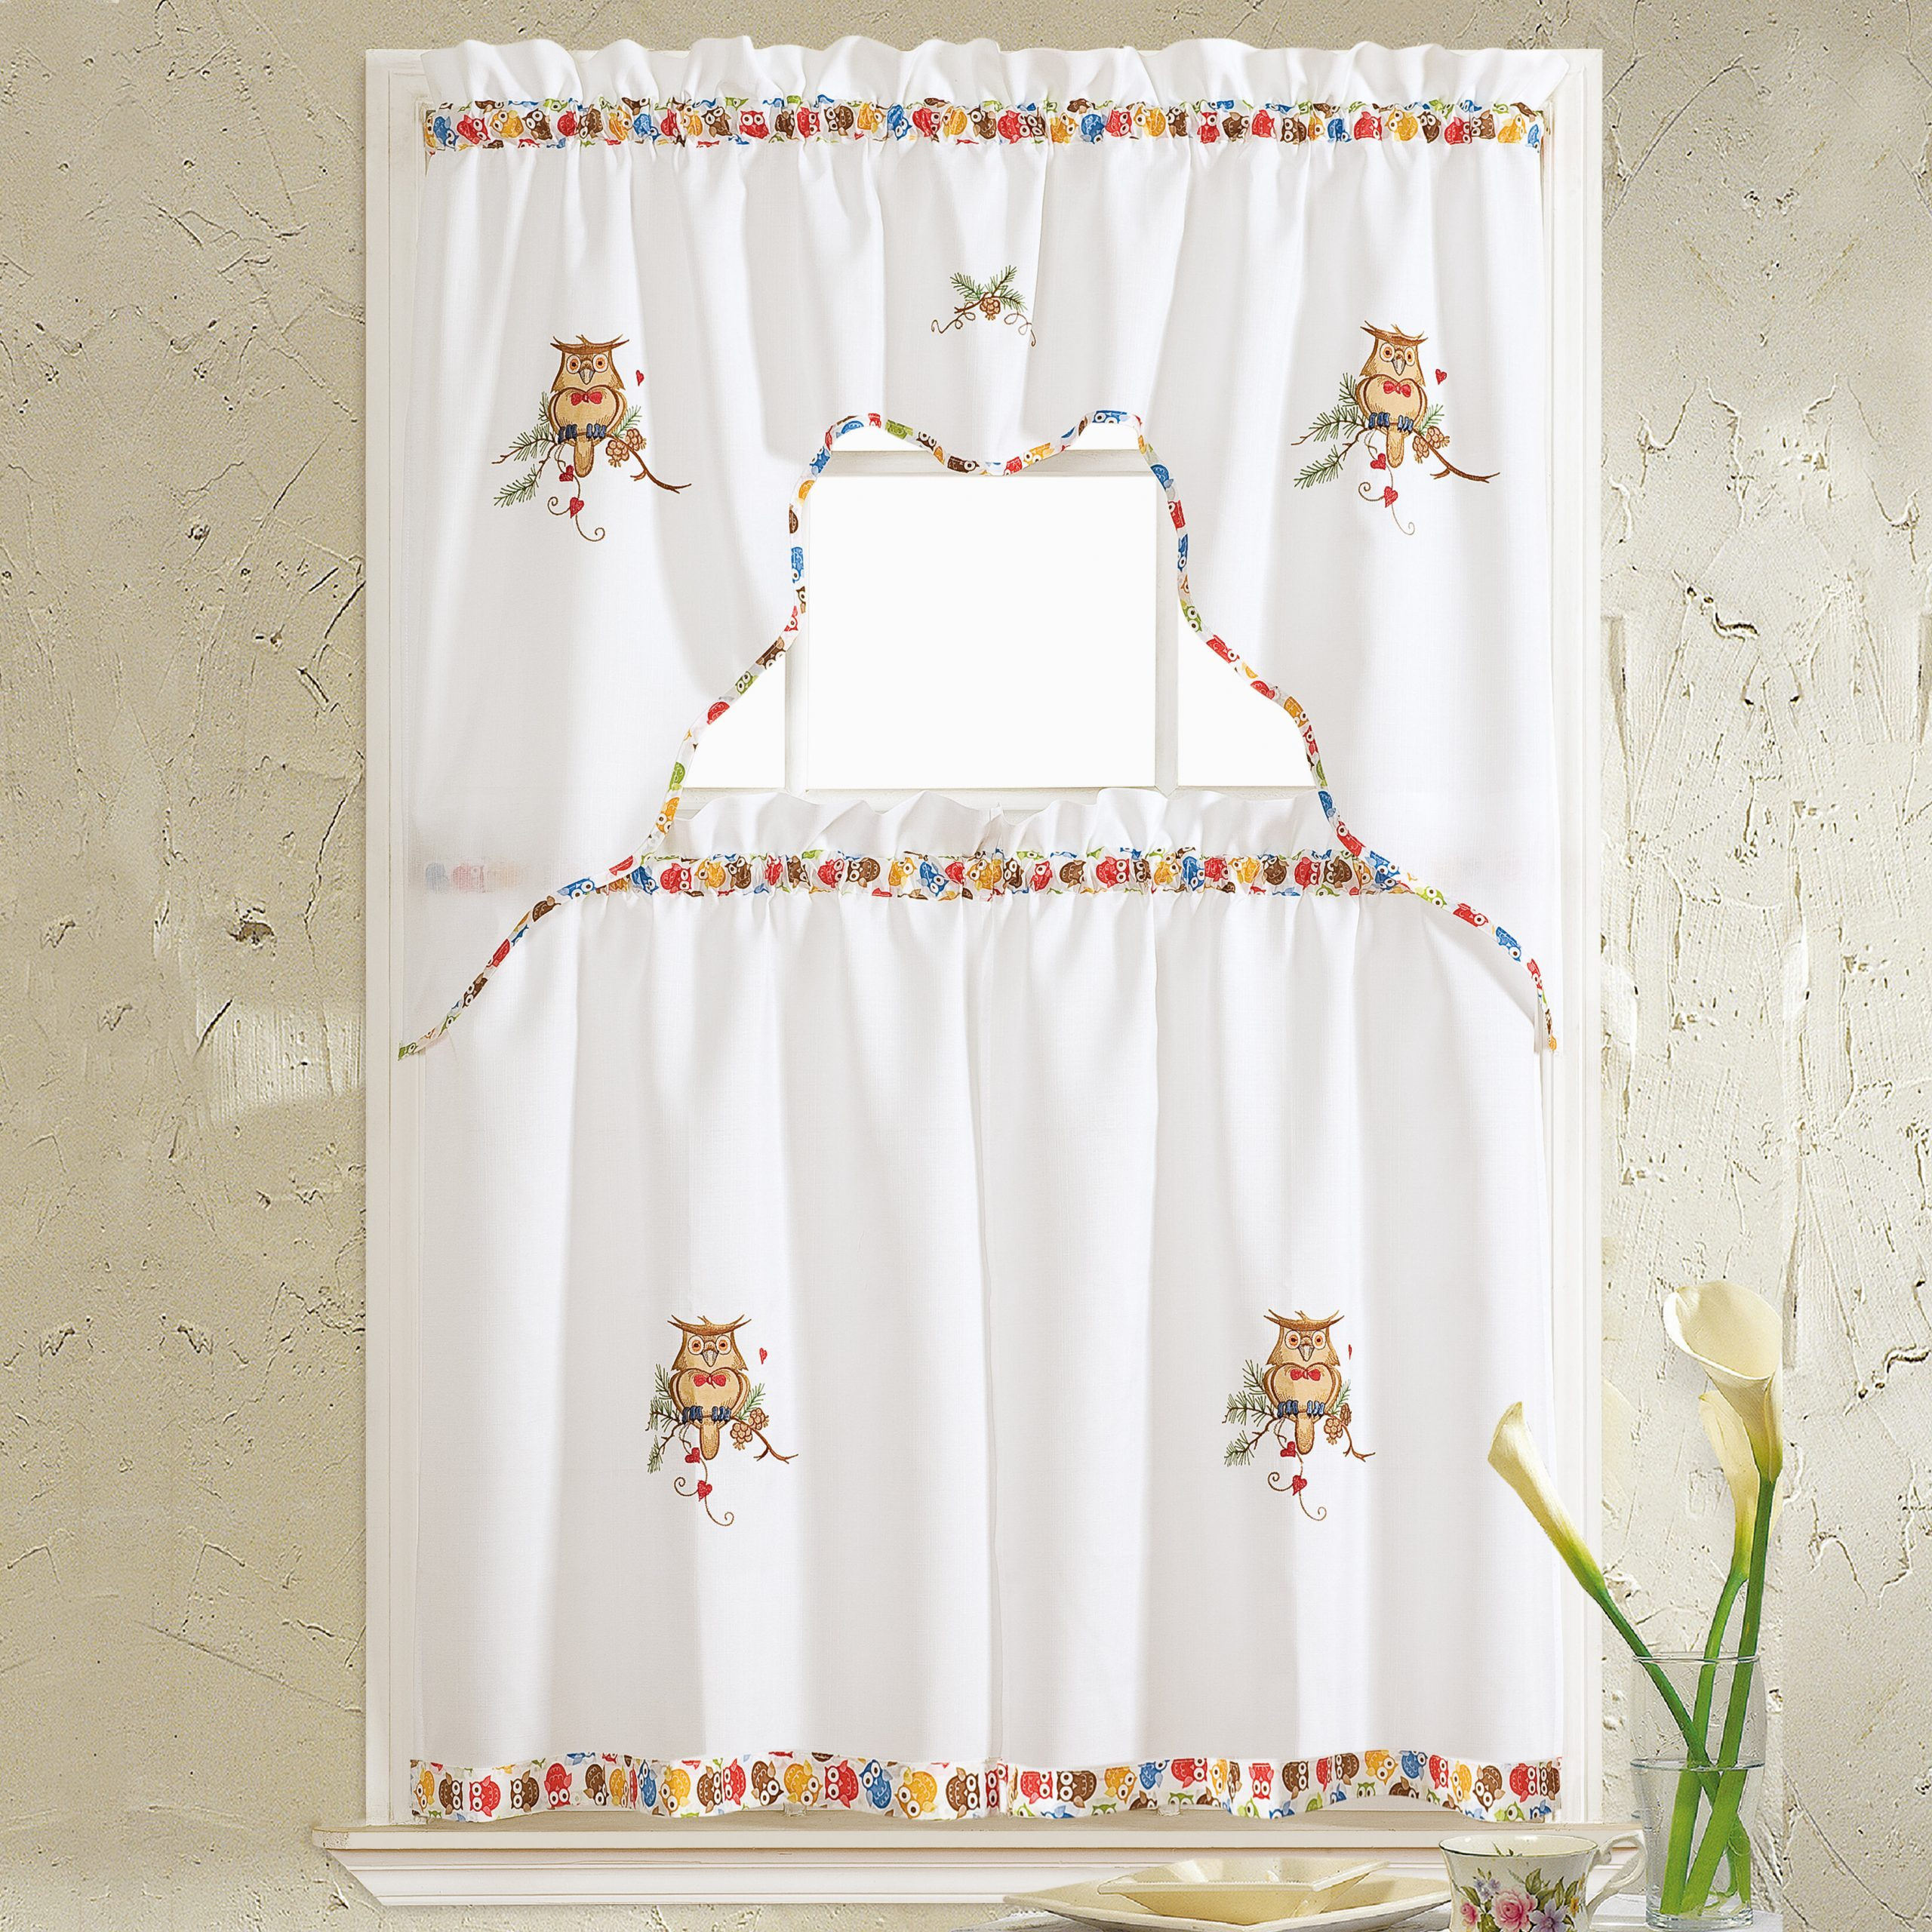 Hartlepool Owl 36'' Kitchen Curtain In Window Curtains Sets With Colorful Marketplace Vegetable And Sunflower Print (View 13 of 20)